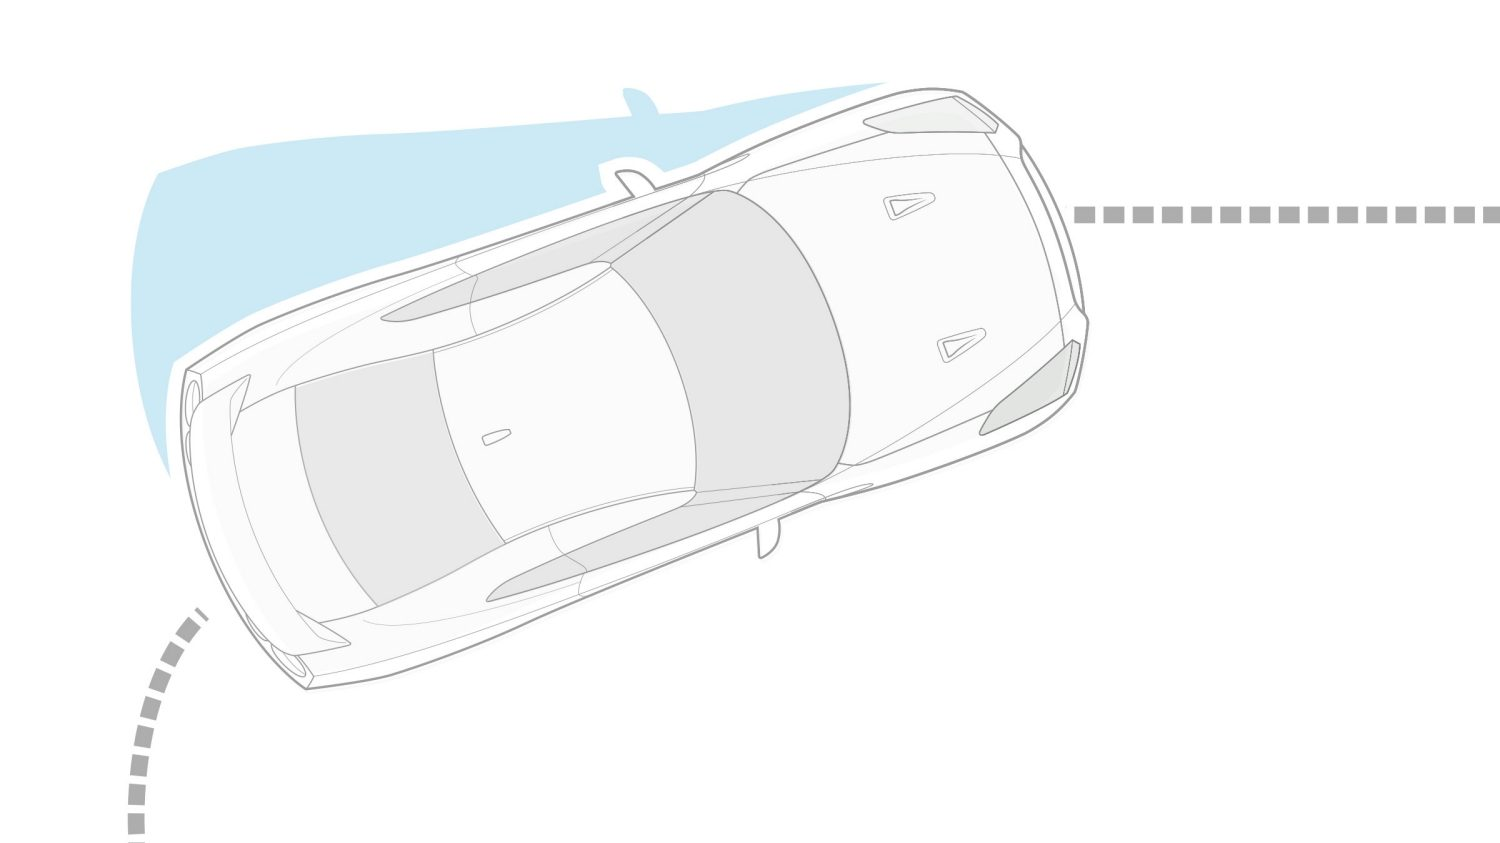 Nissan GT-R Vehicle Dynamic Control (VDC) illustration